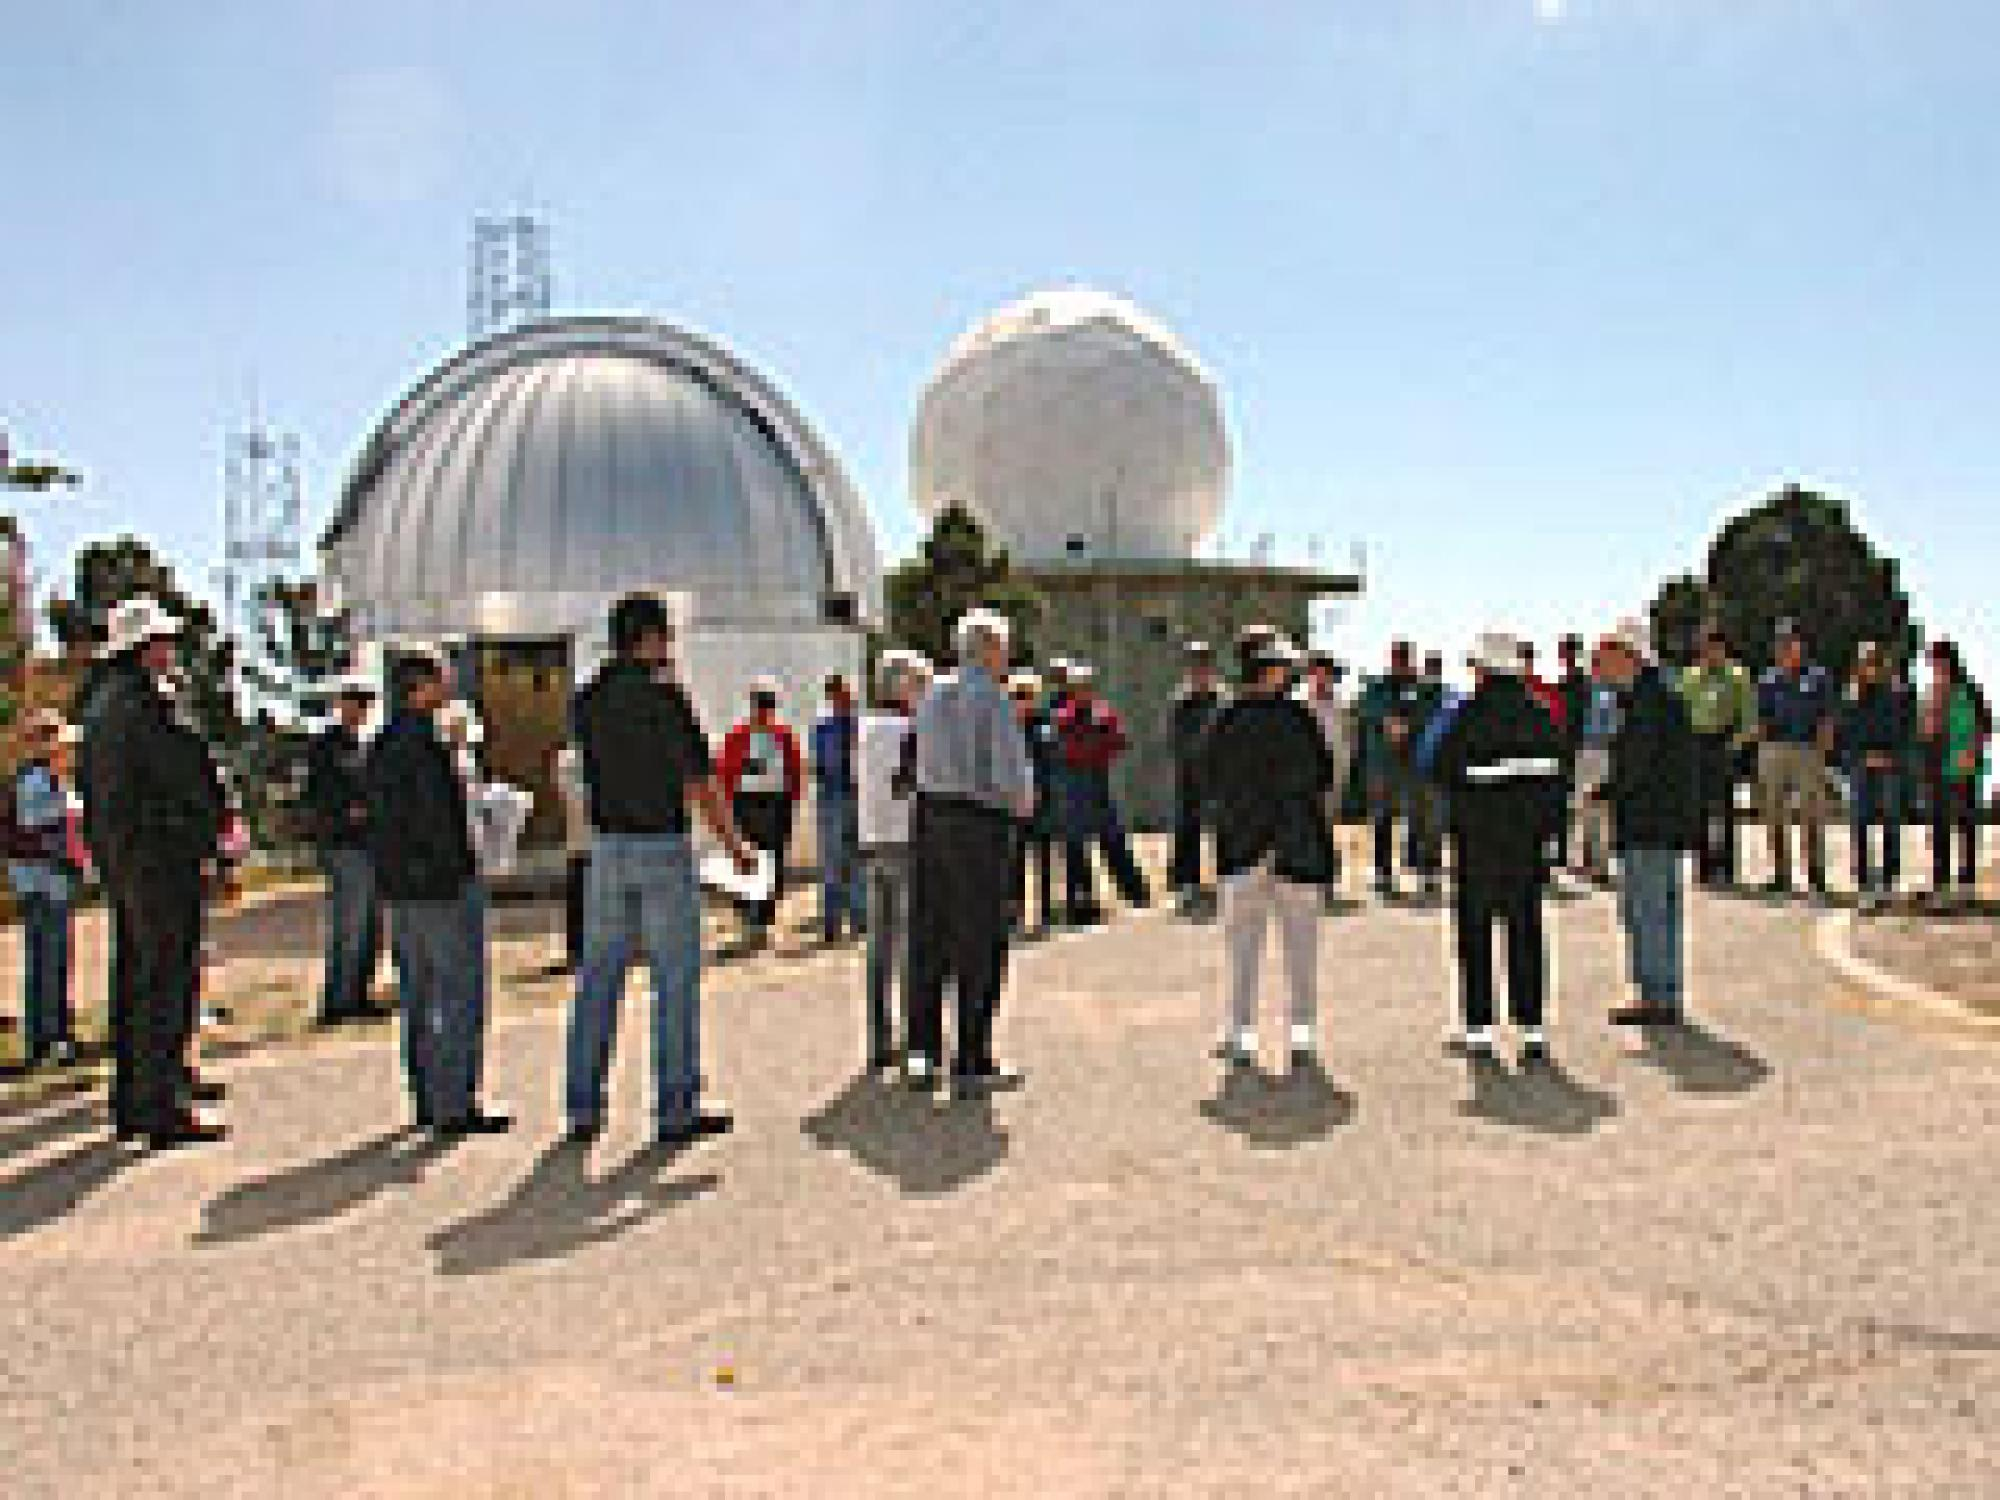 UA astronomers, Jamieson family members and friends from Orcas Island, Washington, gathered at the Mount Lemmon summit for dedication ceremonies Oct. 29.